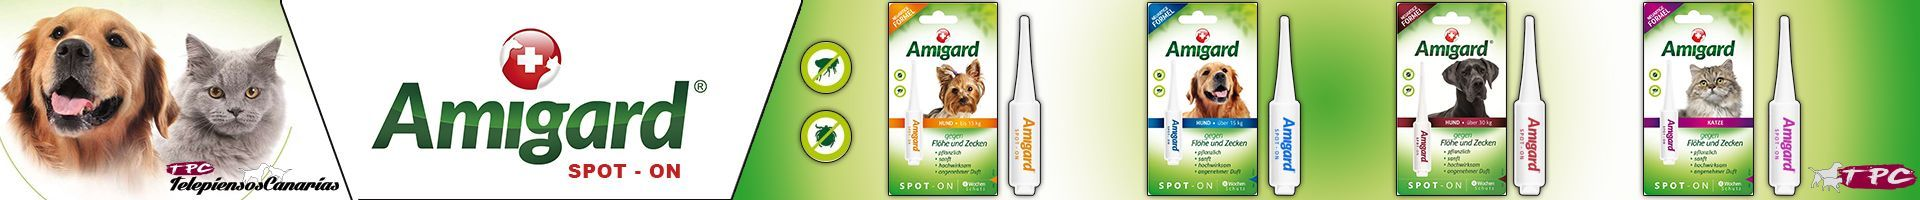 Antiparasitario Amigard Spot-on para gatos 100% natural